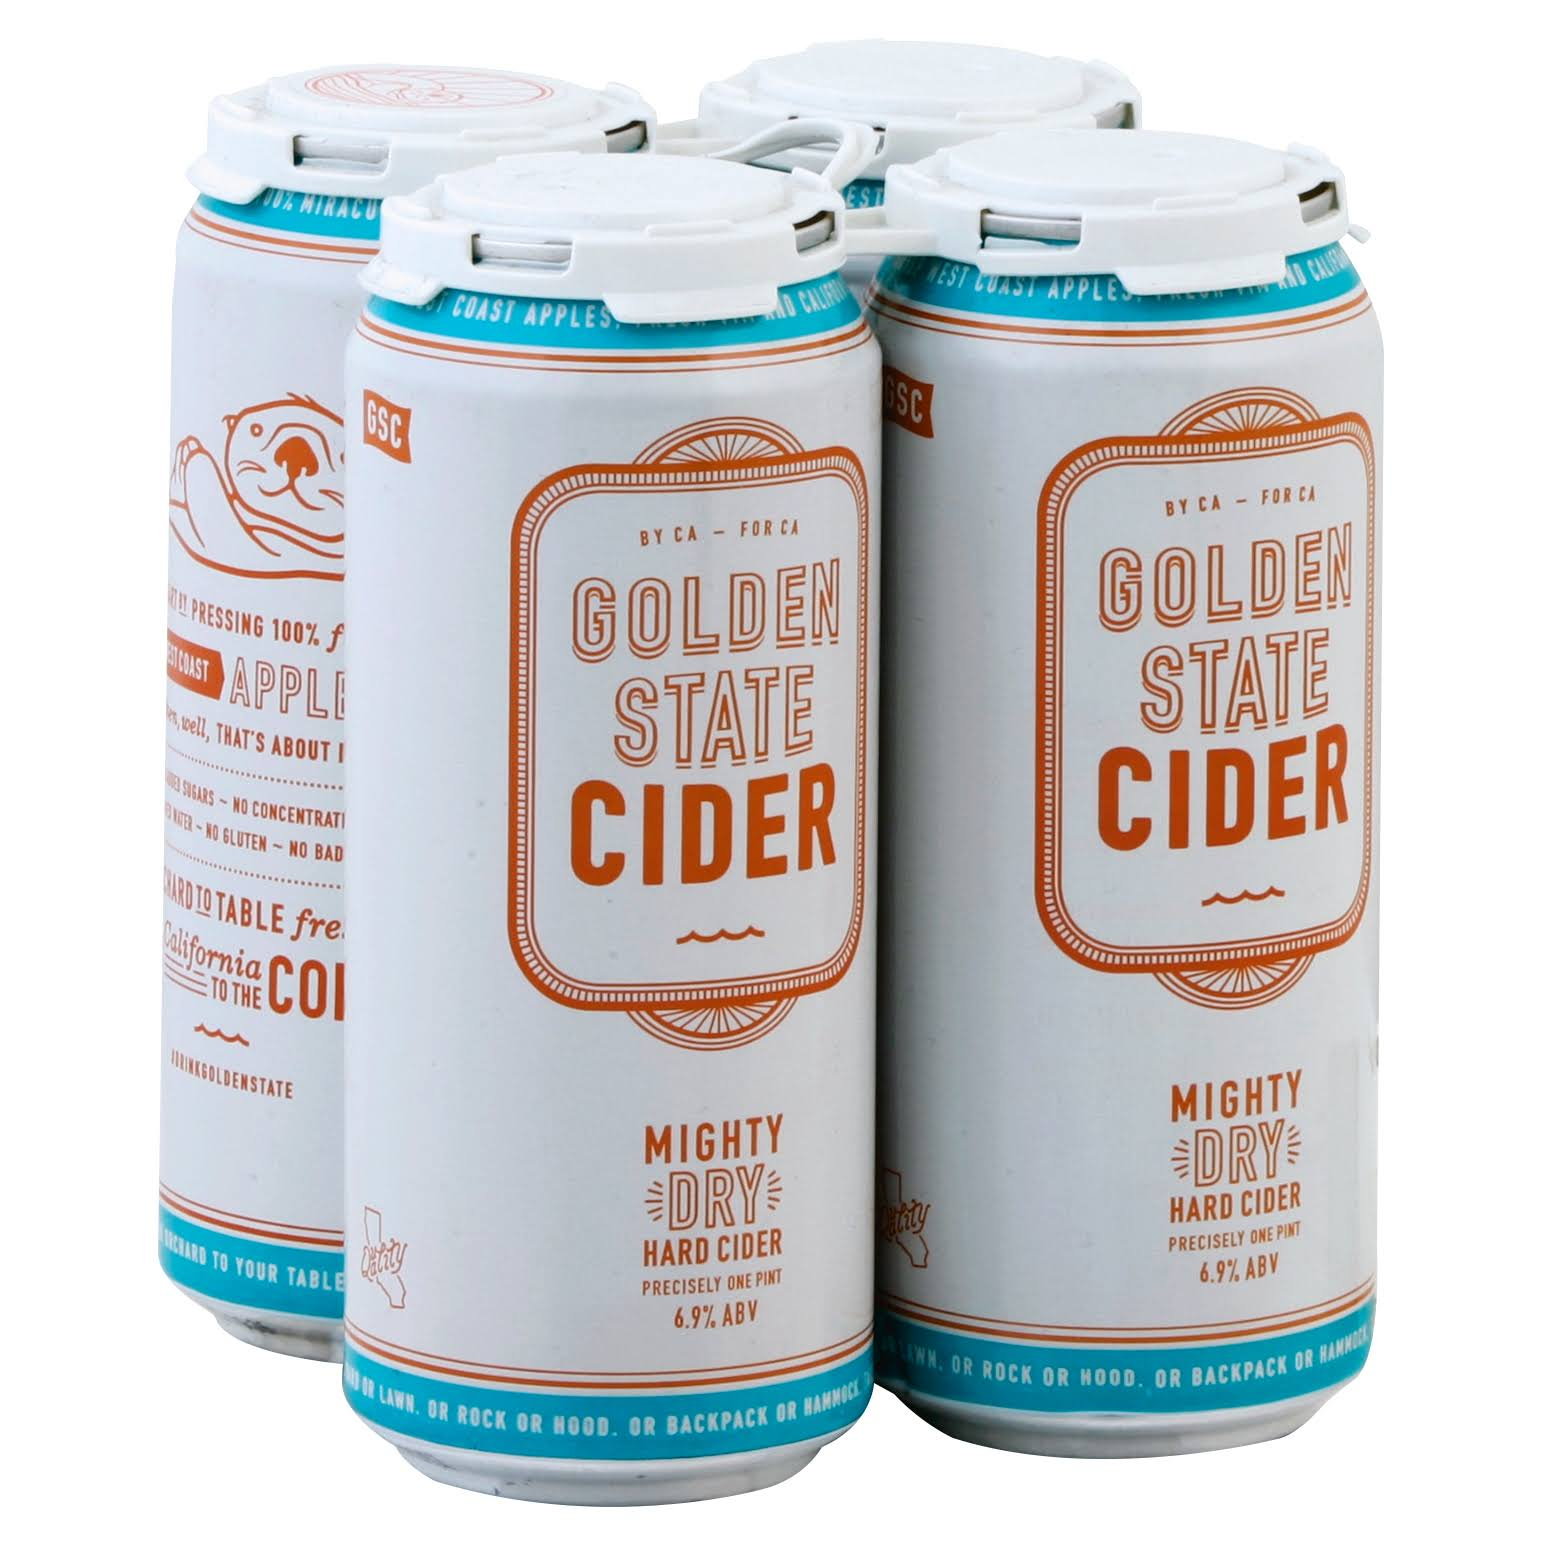 Golden State Cider Hard Cider, Mighty Dry - 4 pack, 1 pint cans